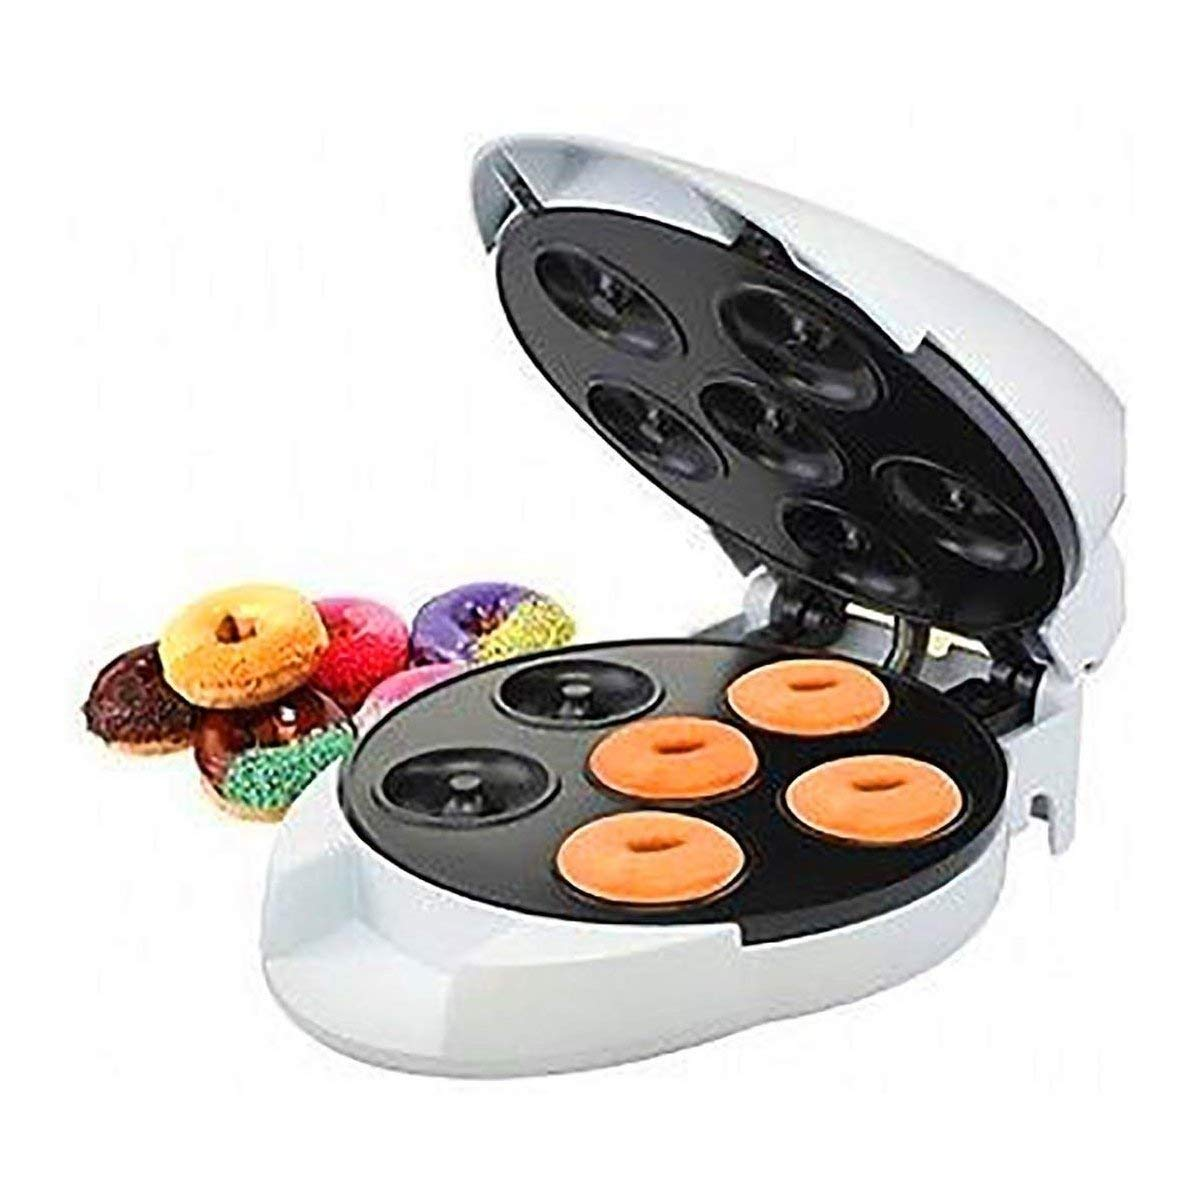 Smart Planet MDM-1 The Original Donut Factory Mini Donut Maker, White by Smart Planet